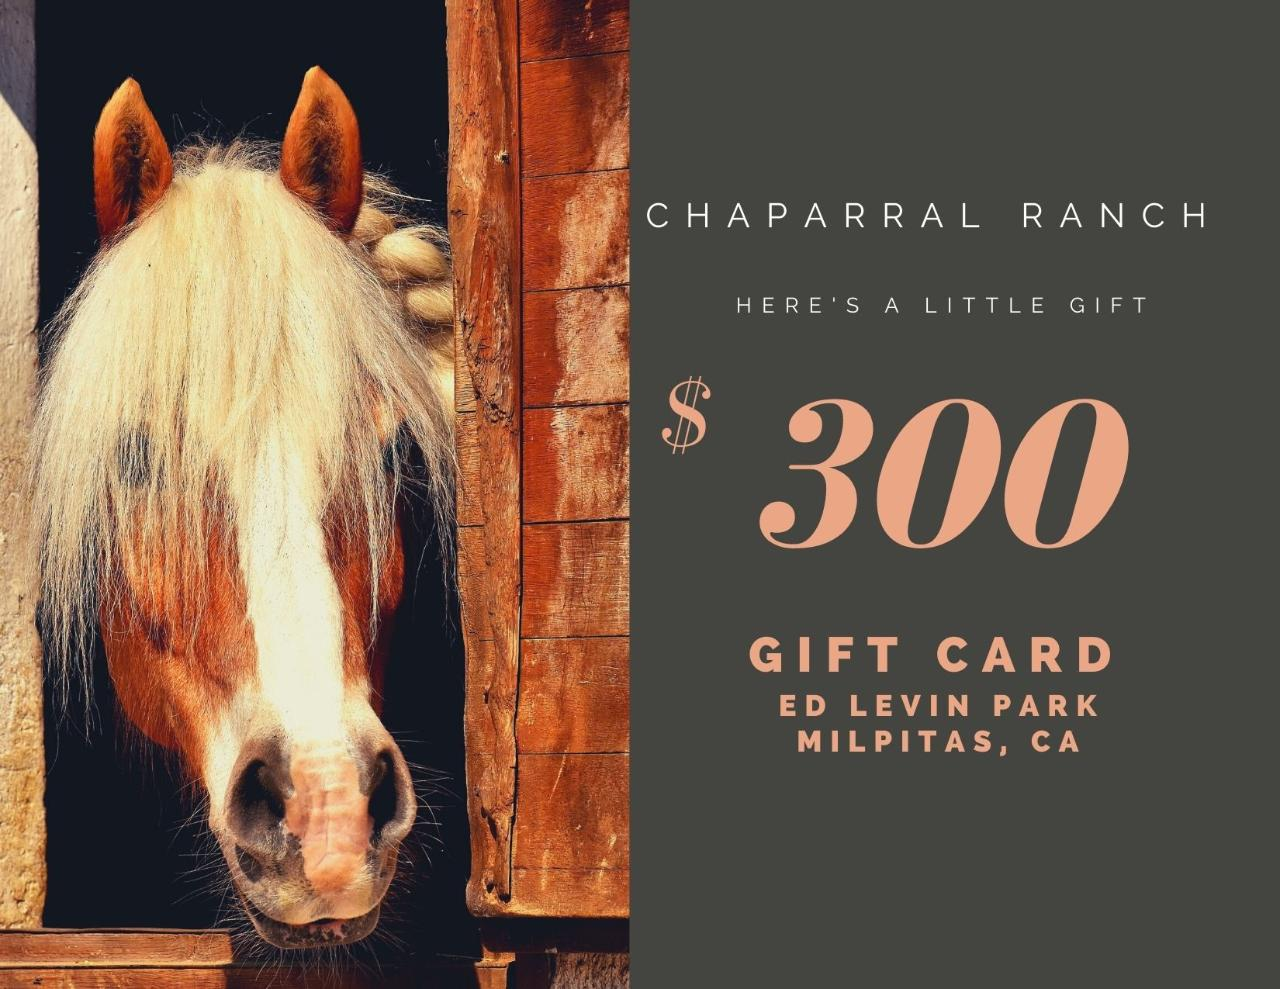 $300 Gift Card - Ed Levin Park